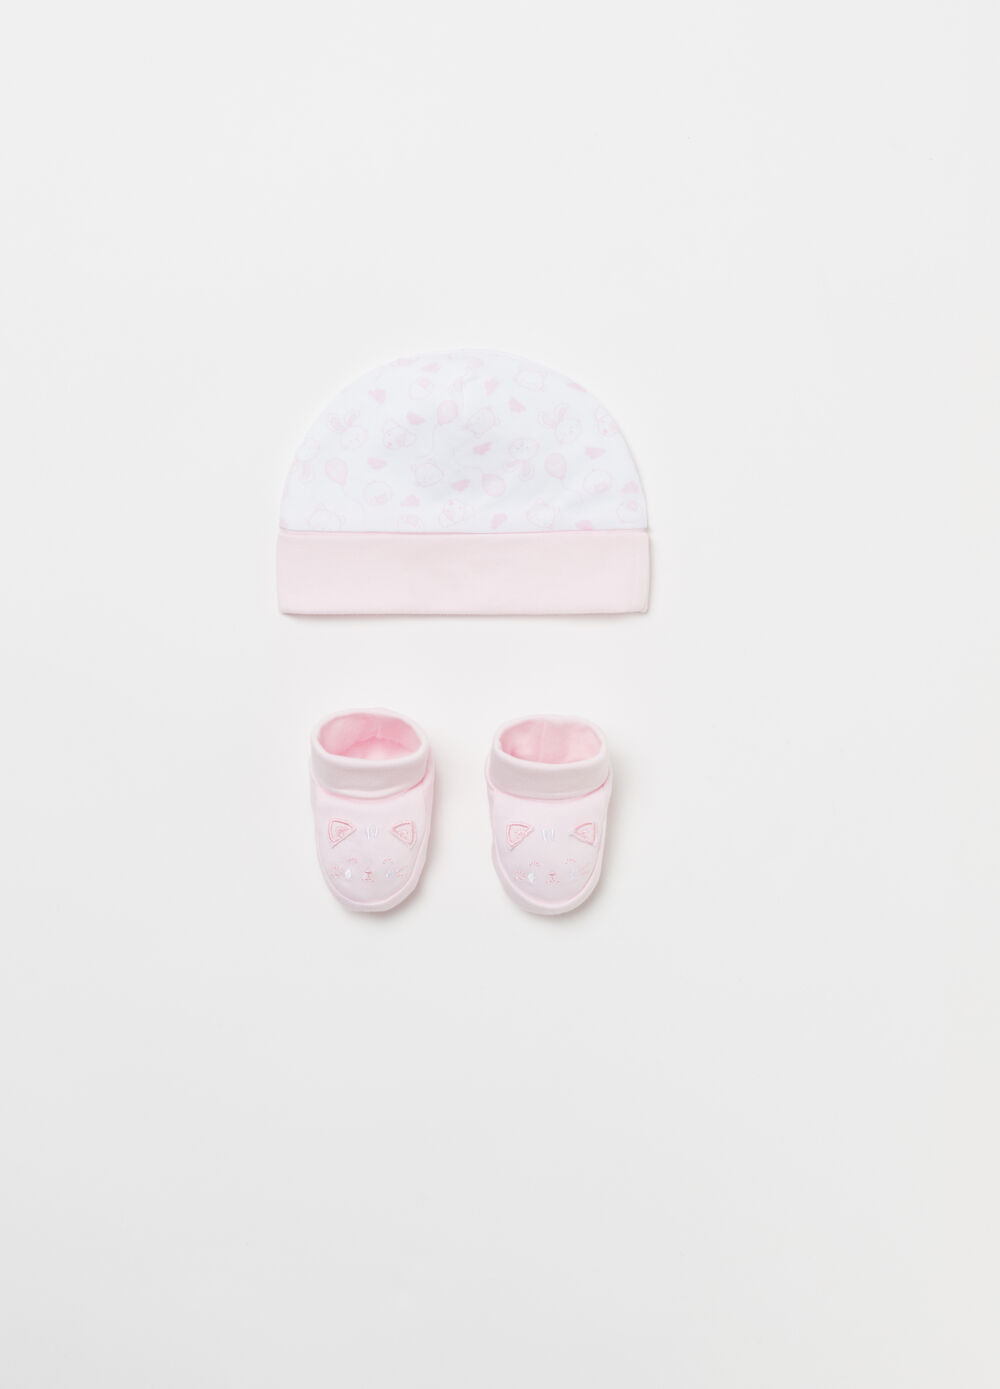 BCI baby shoes and hat with kitten